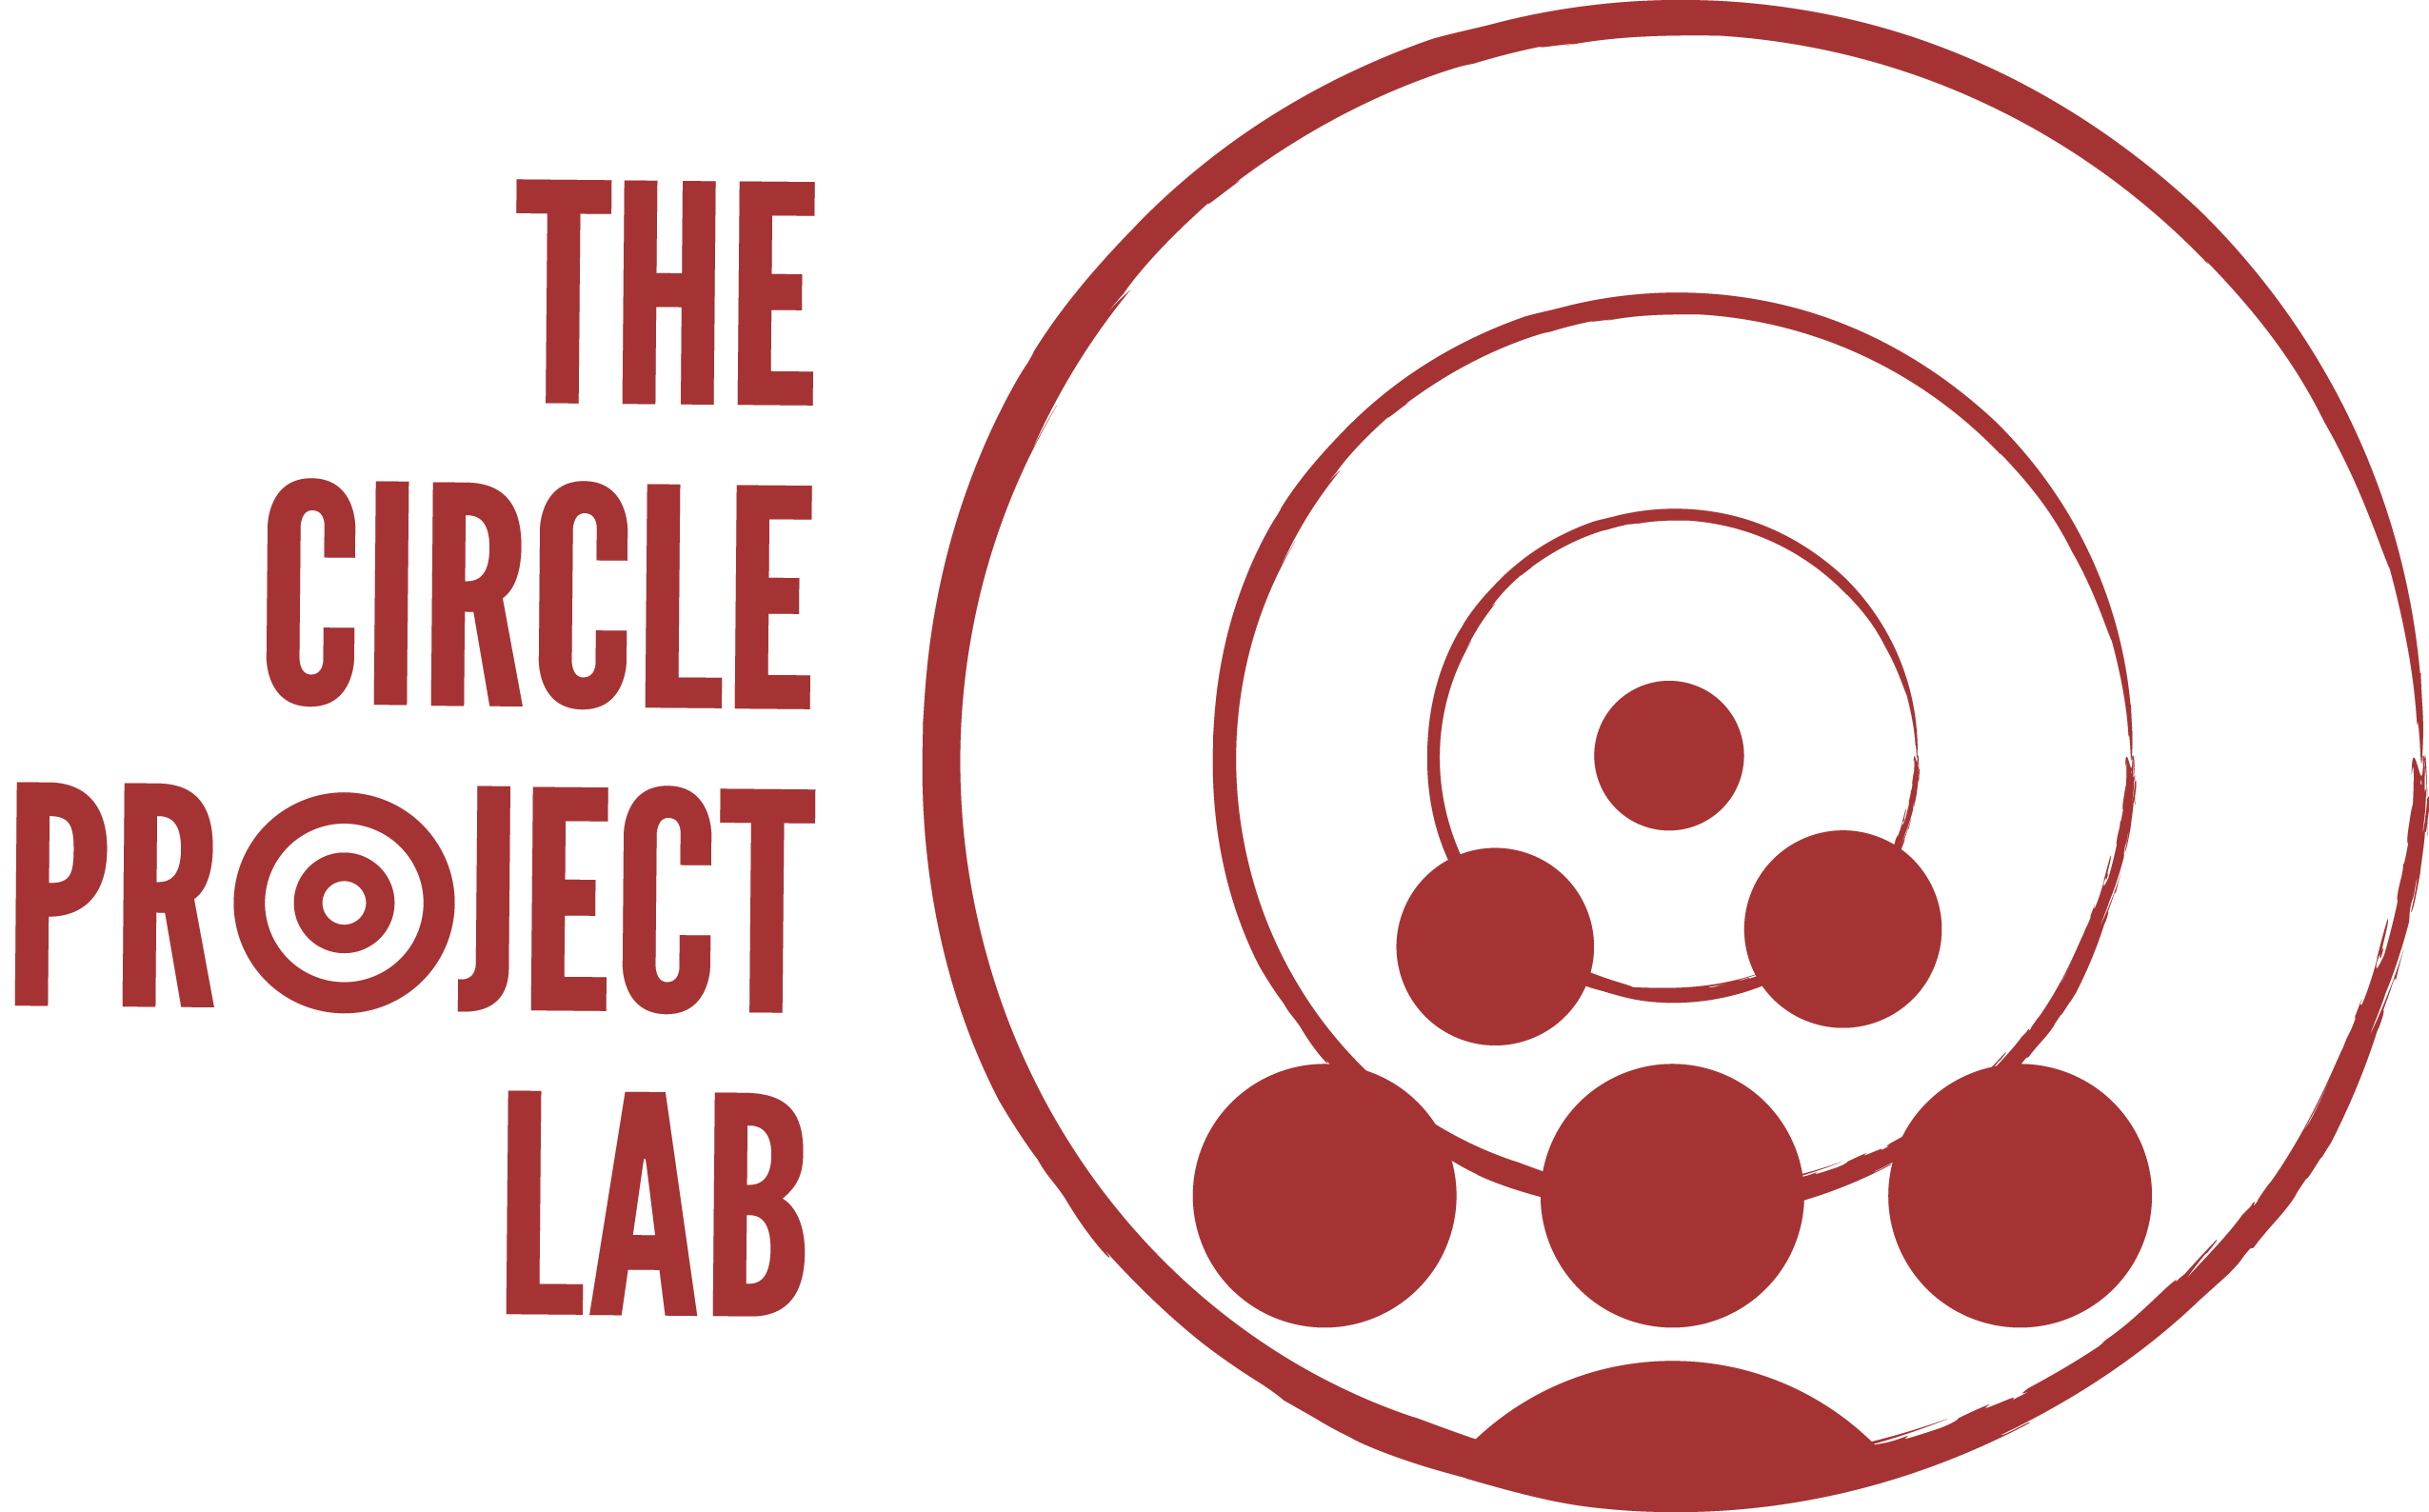 the circle project lab